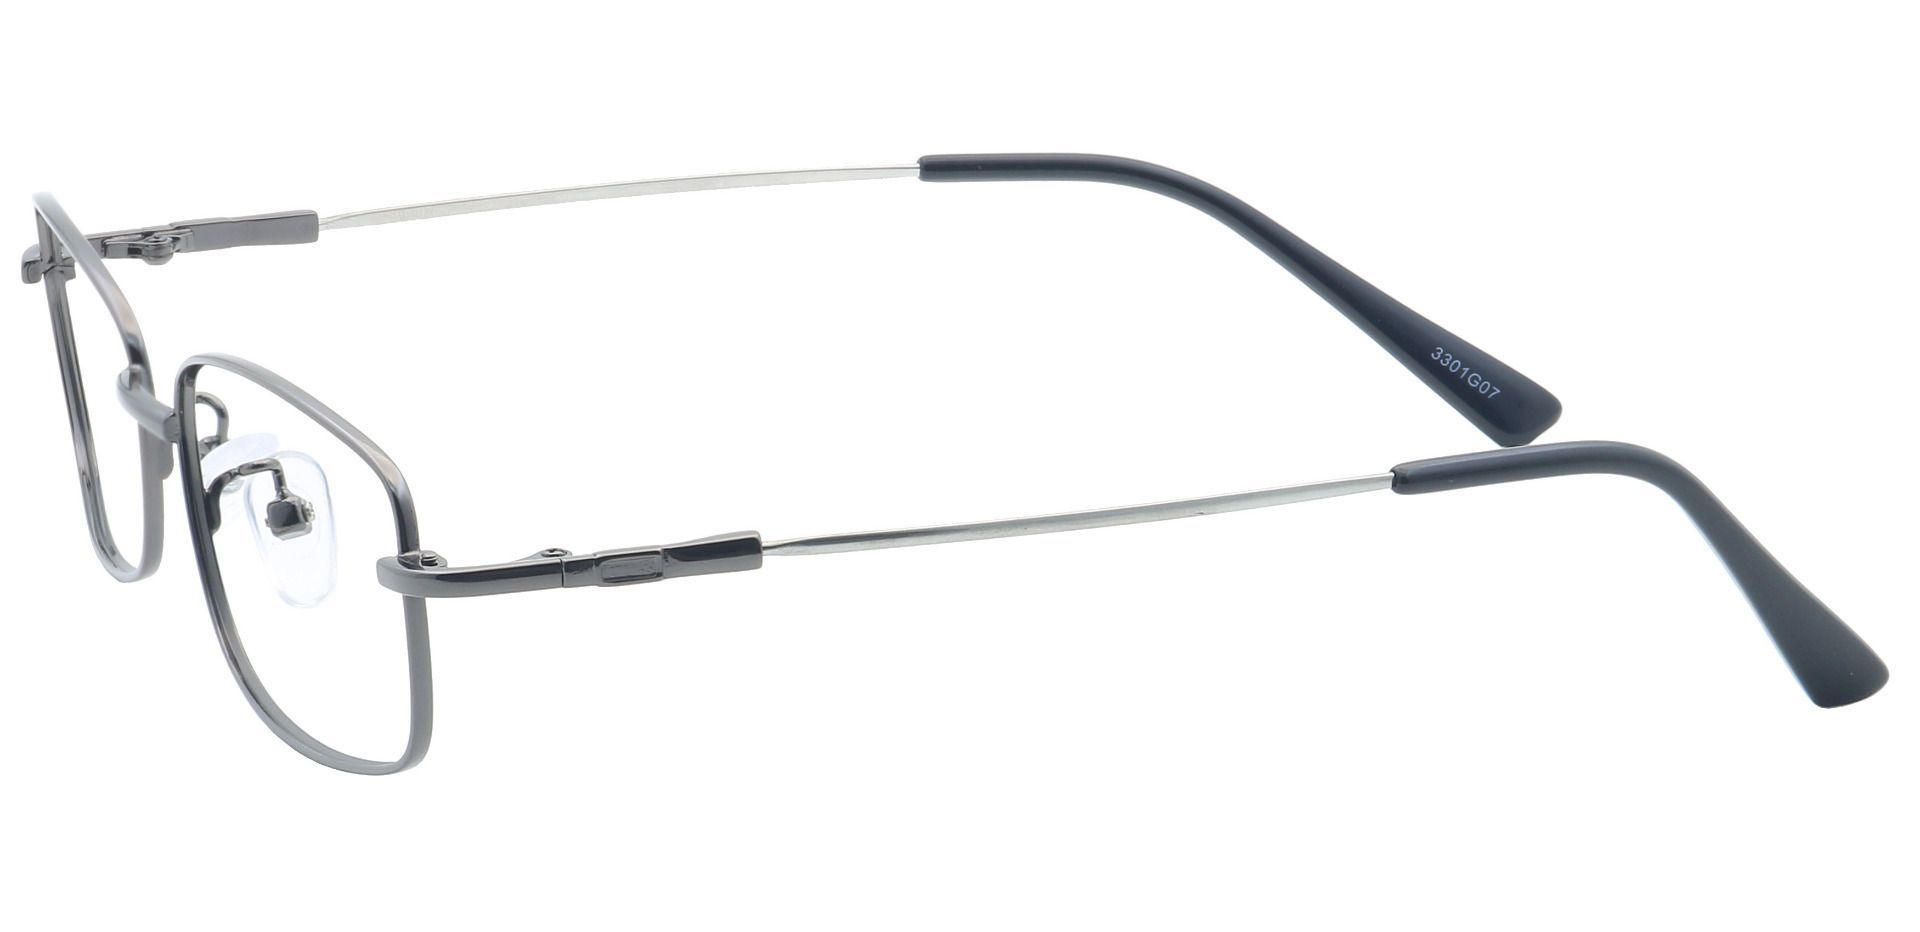 Ross Rectangle Eyeglasses Frame -  Gunmetal